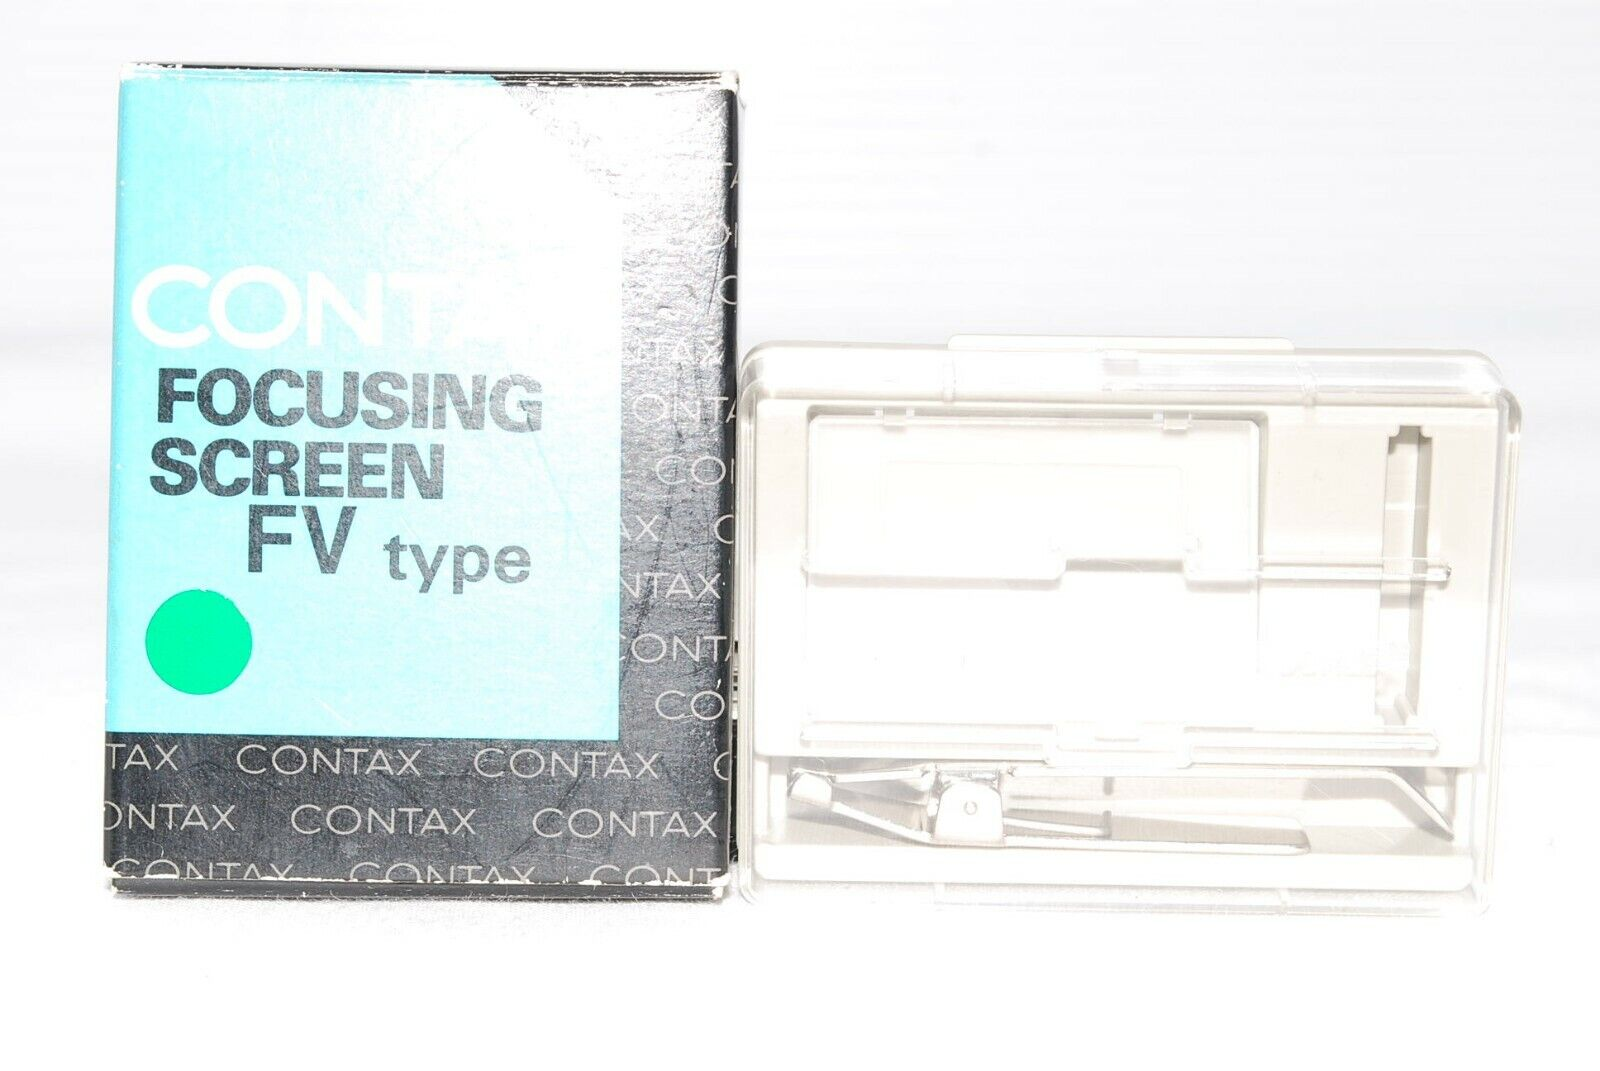 【MINT in BOX】CONTAX Focusing Screen Type FV-3 for RTSIII series from JAPAN